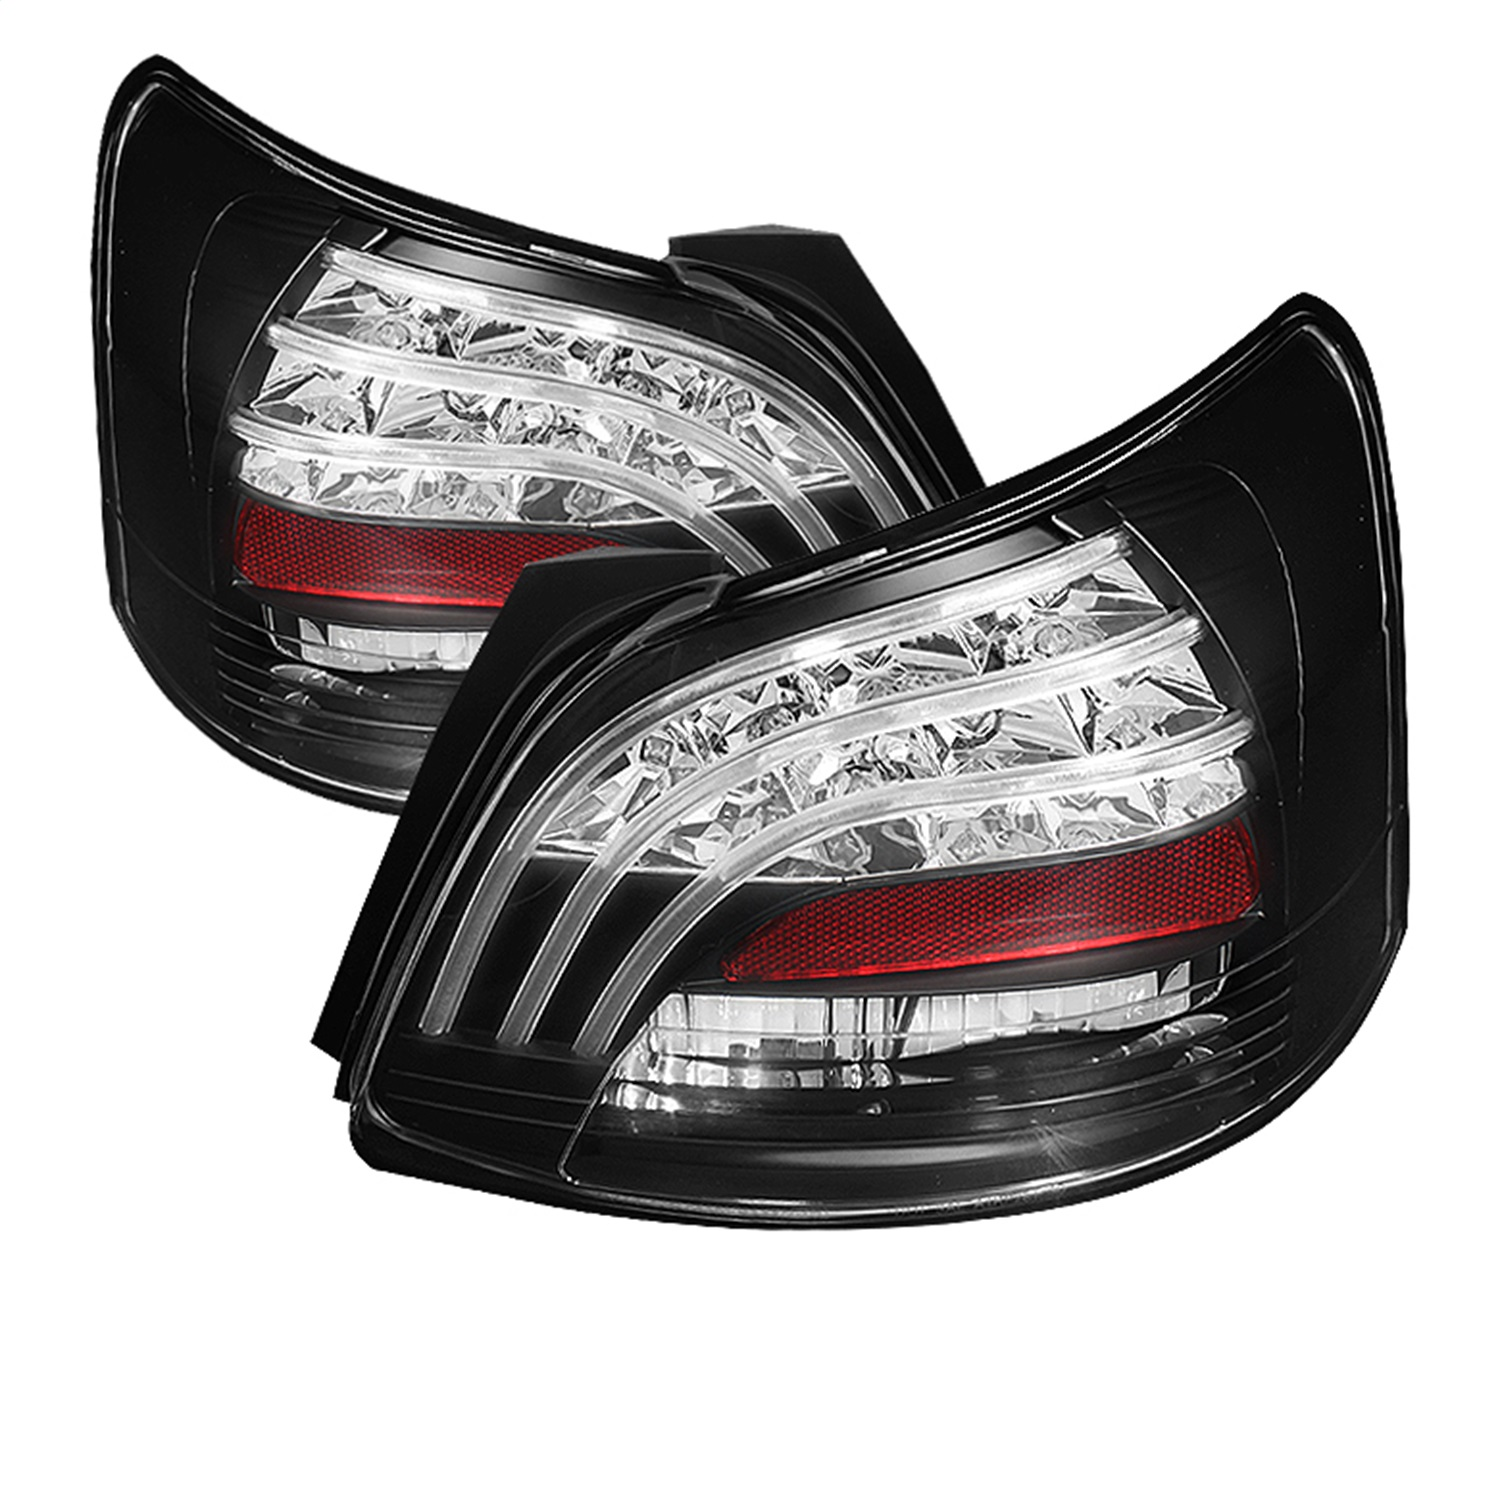 Spyder Auto 5037640 LED Tail Lights Fits 07-09 Yaris